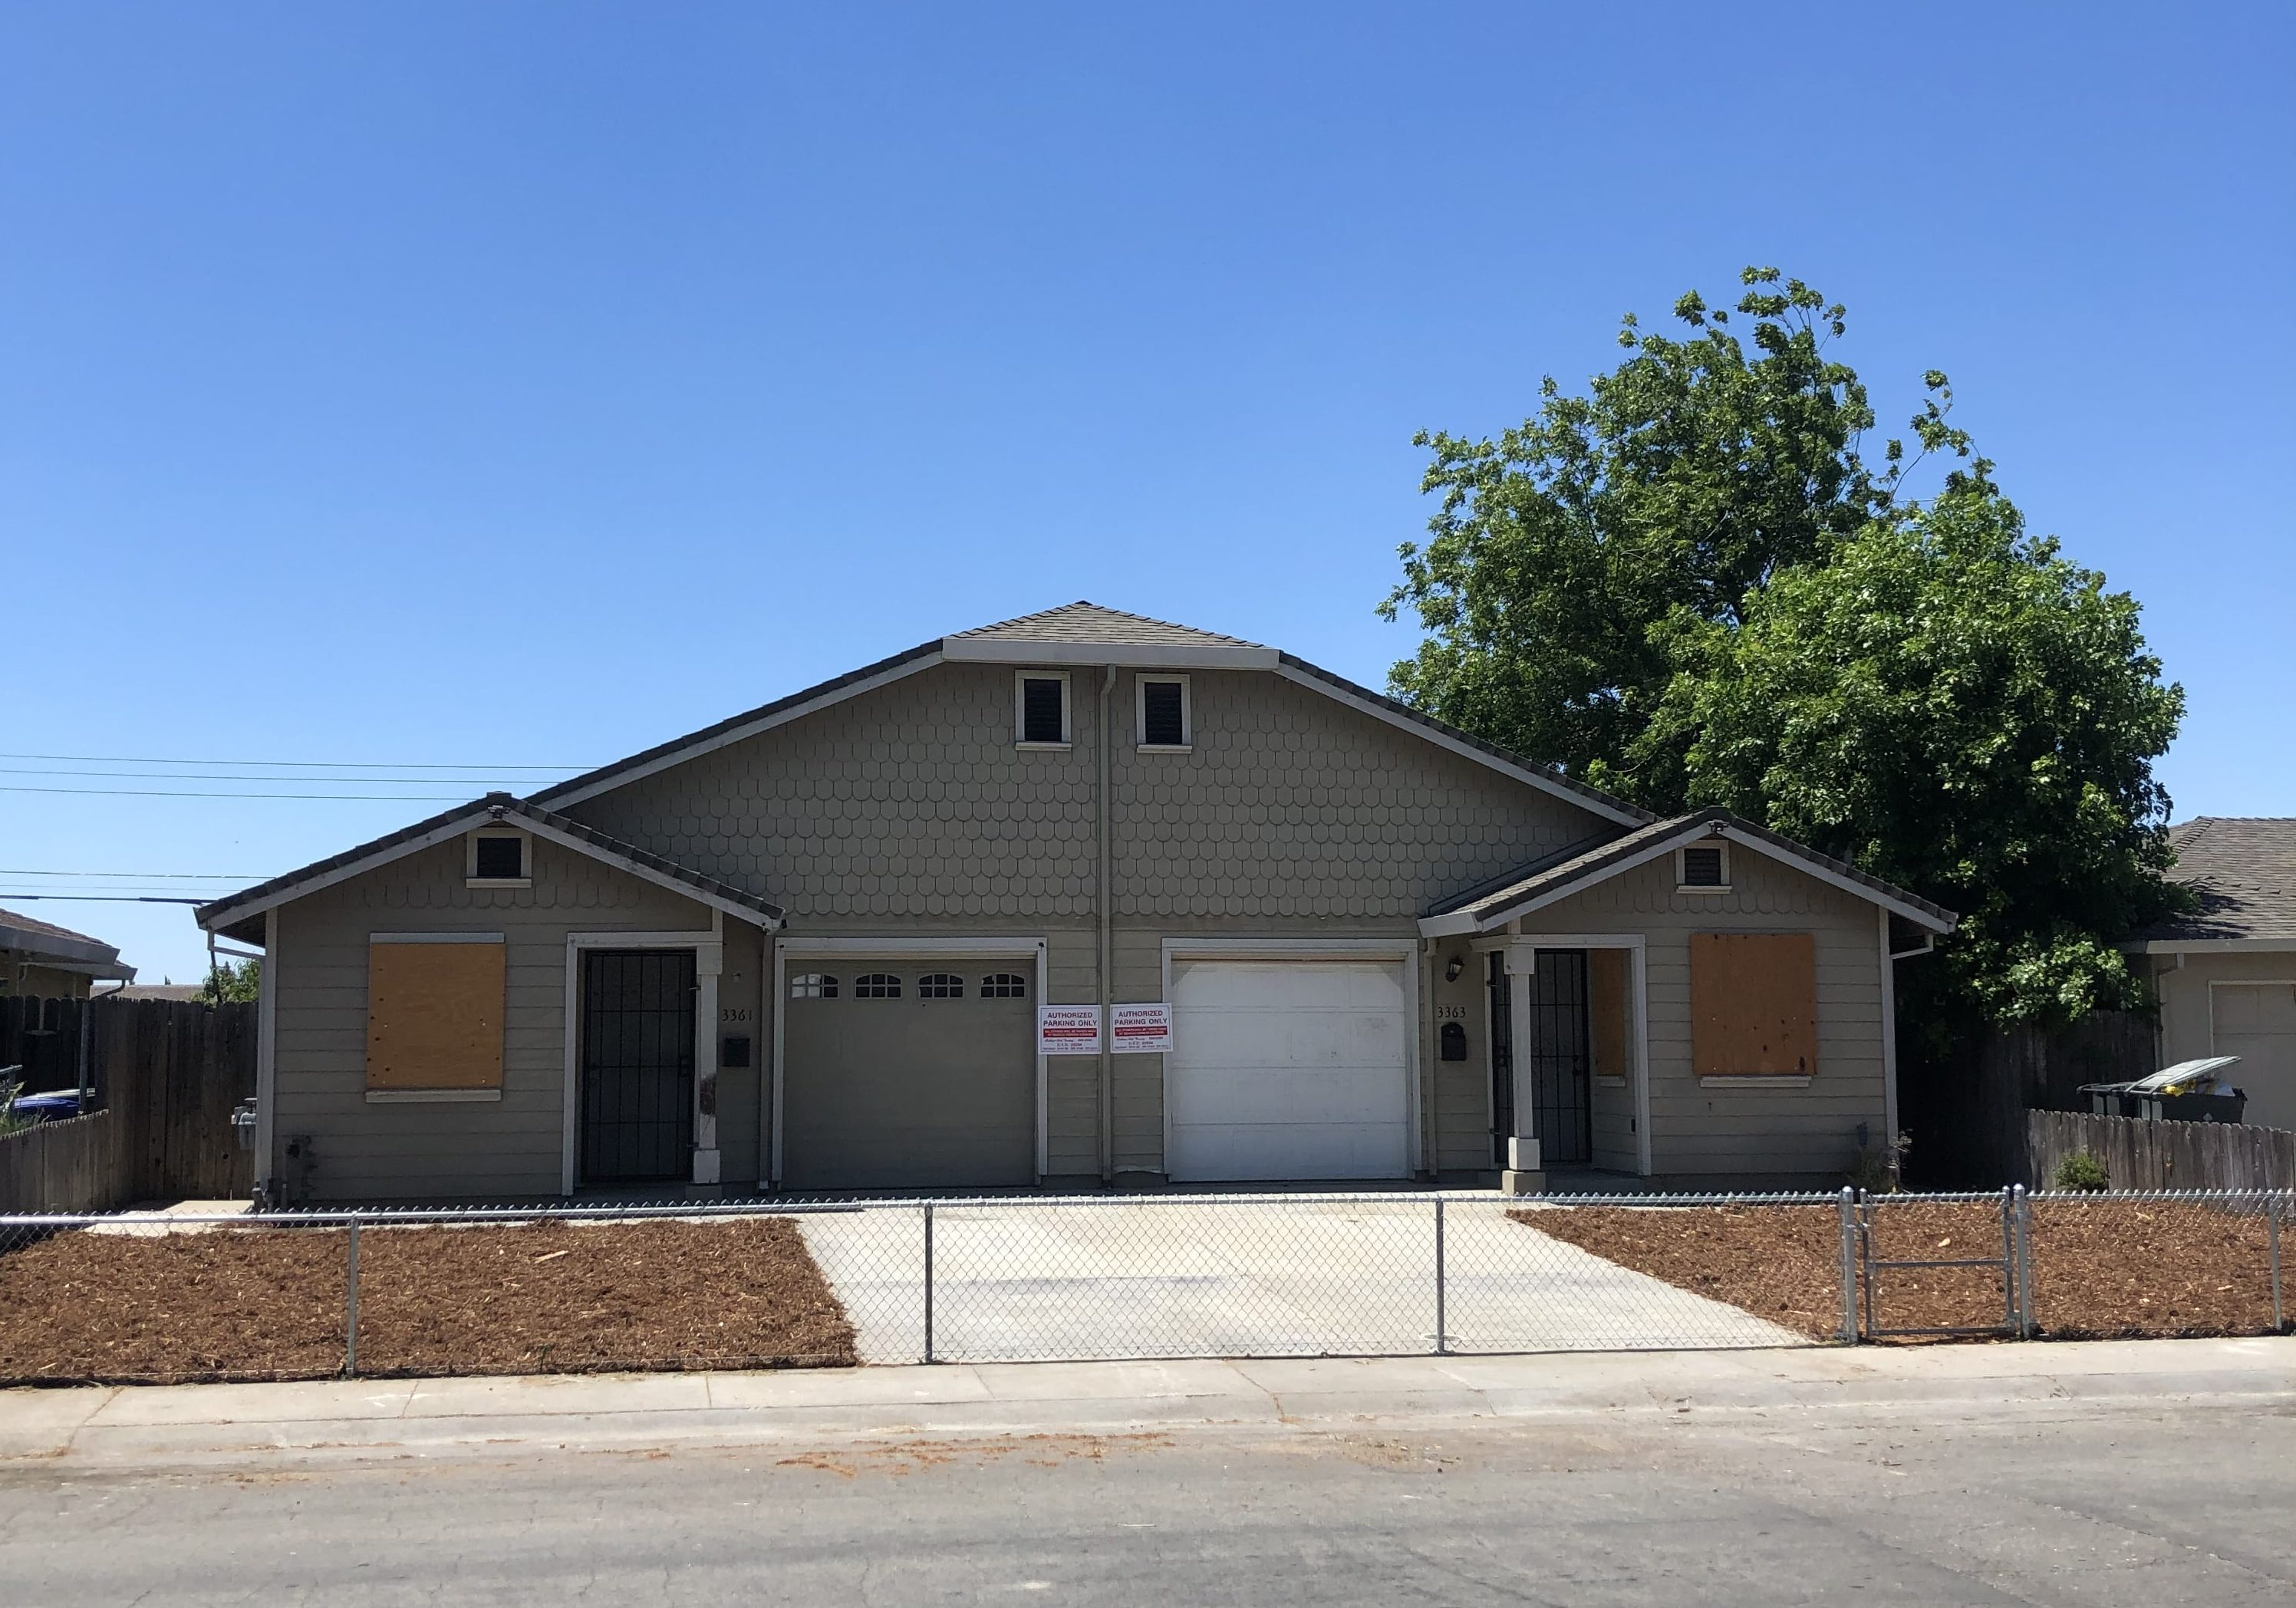 Live Auction: Residential Duplex (3361/3363 Western Avenue) In Sacramento, CA